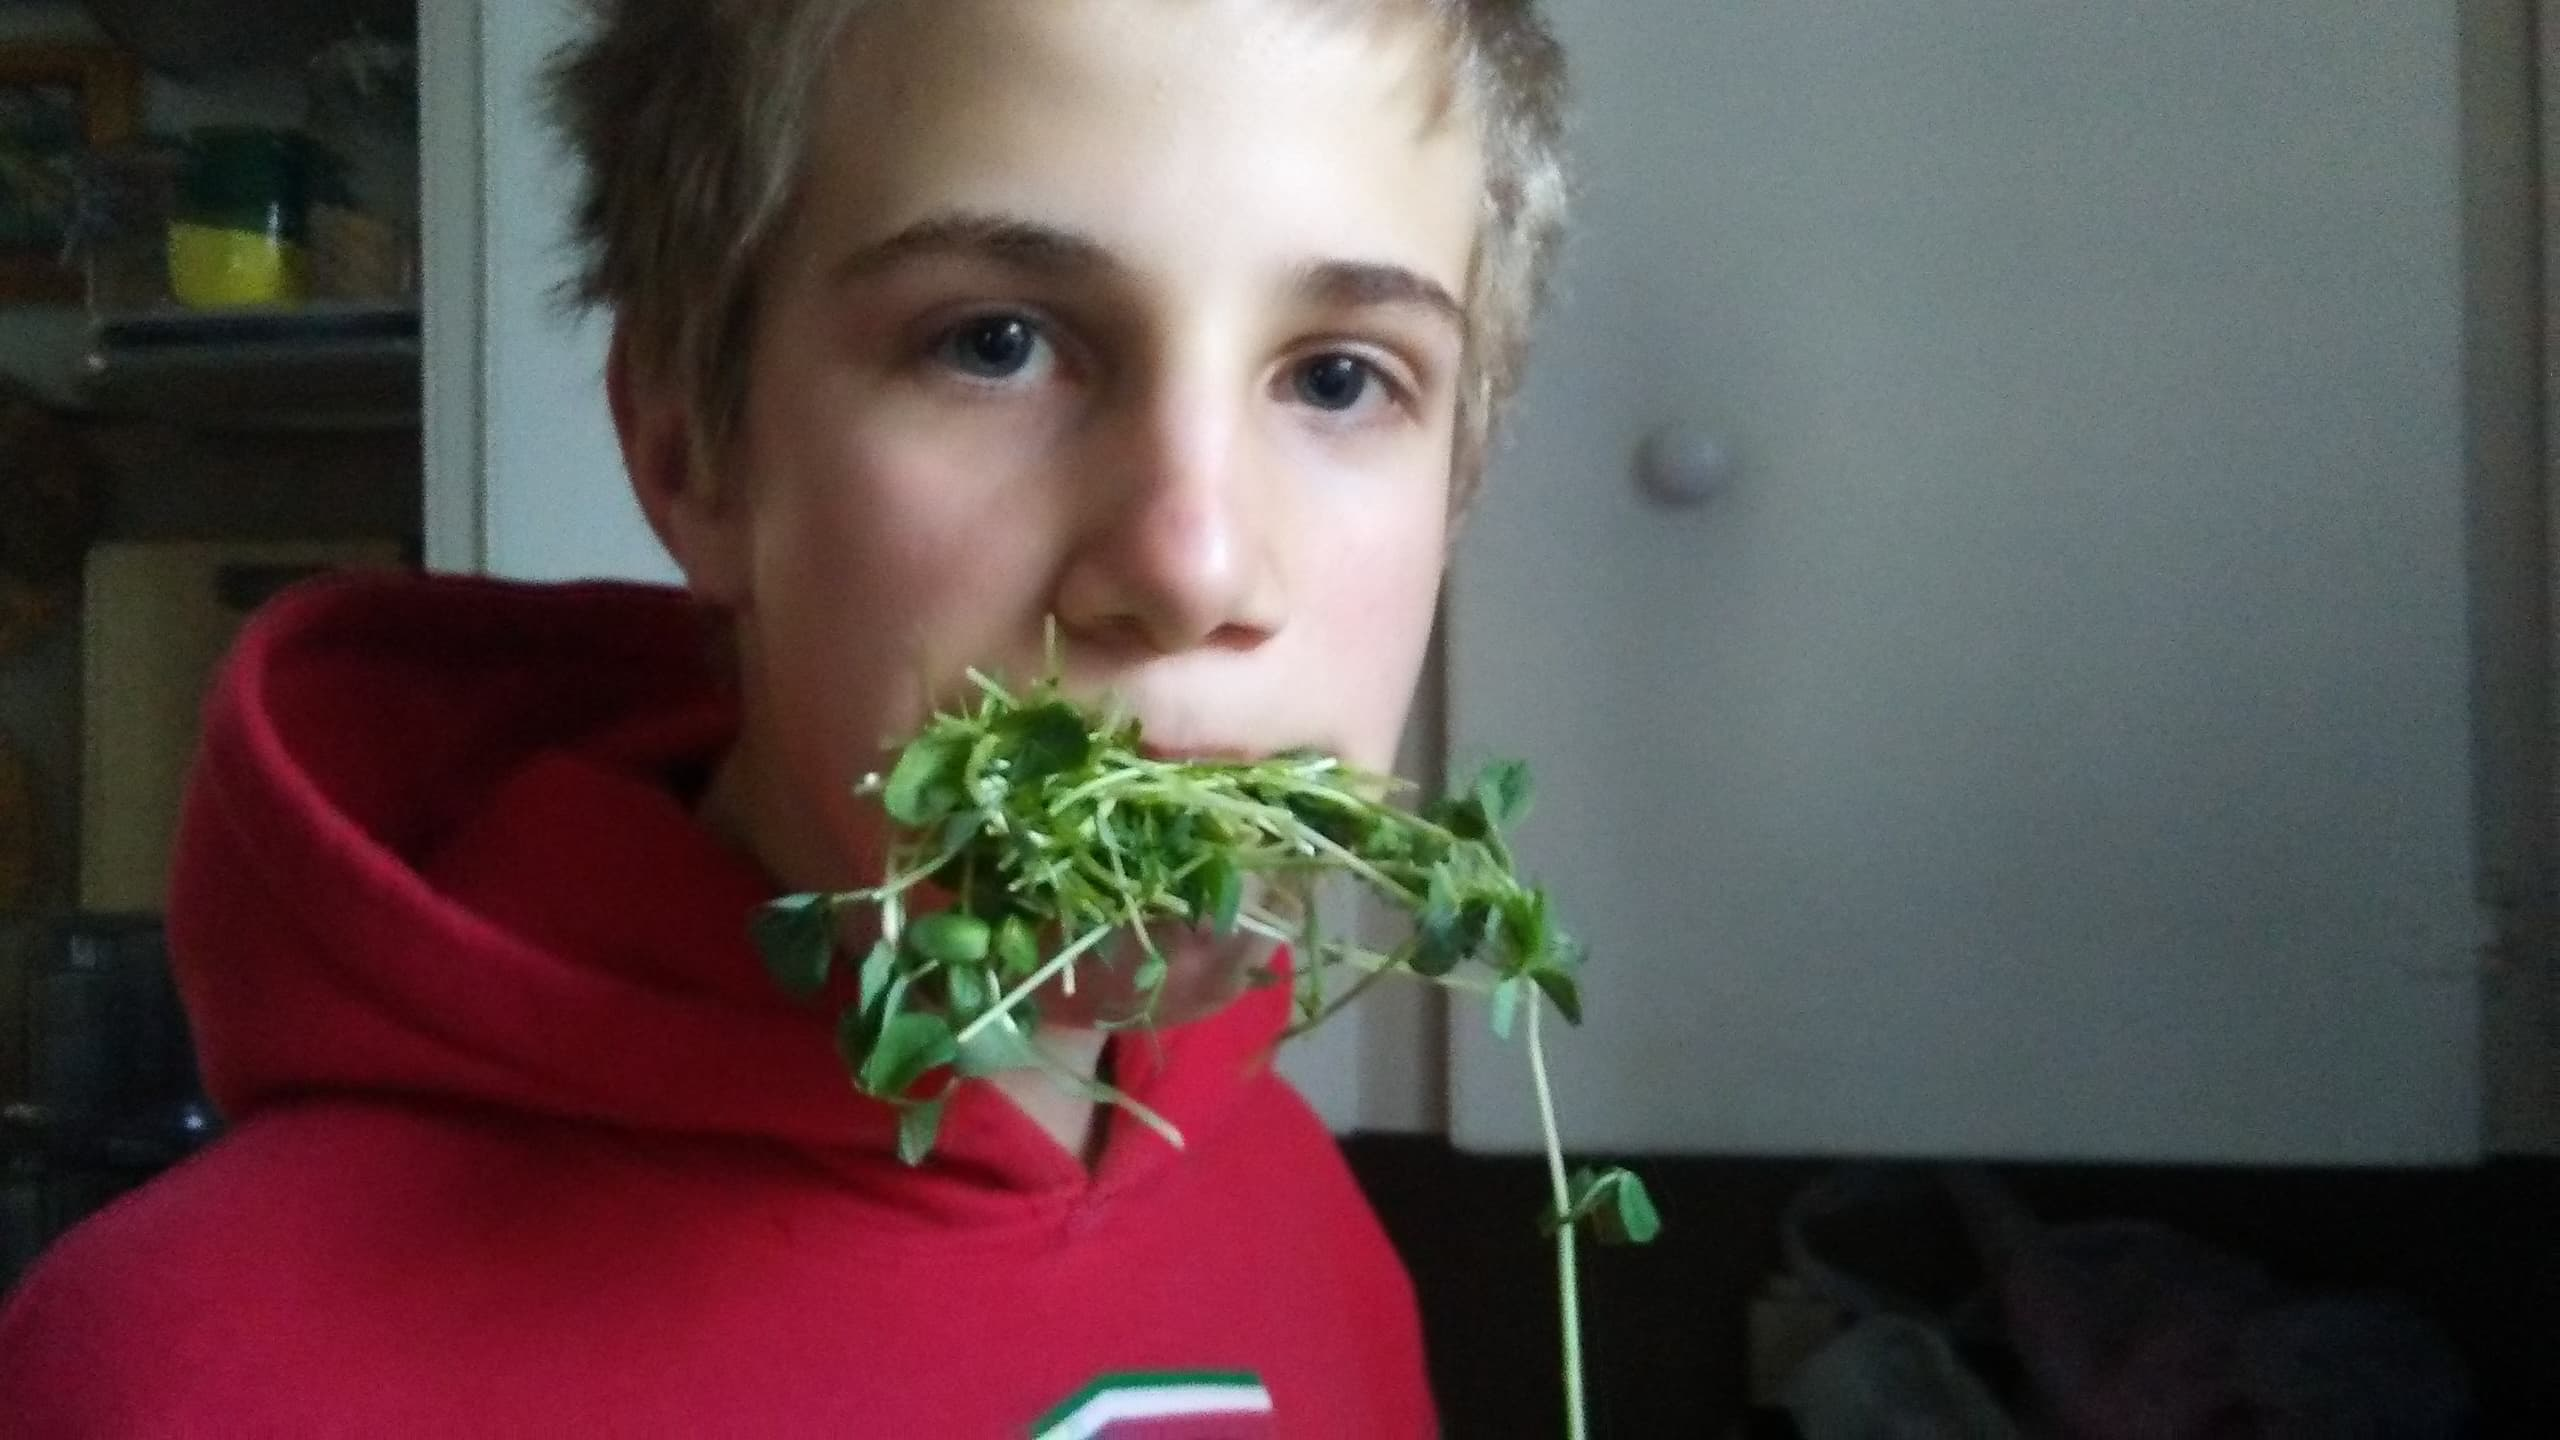 A teenager that eats his vegetables